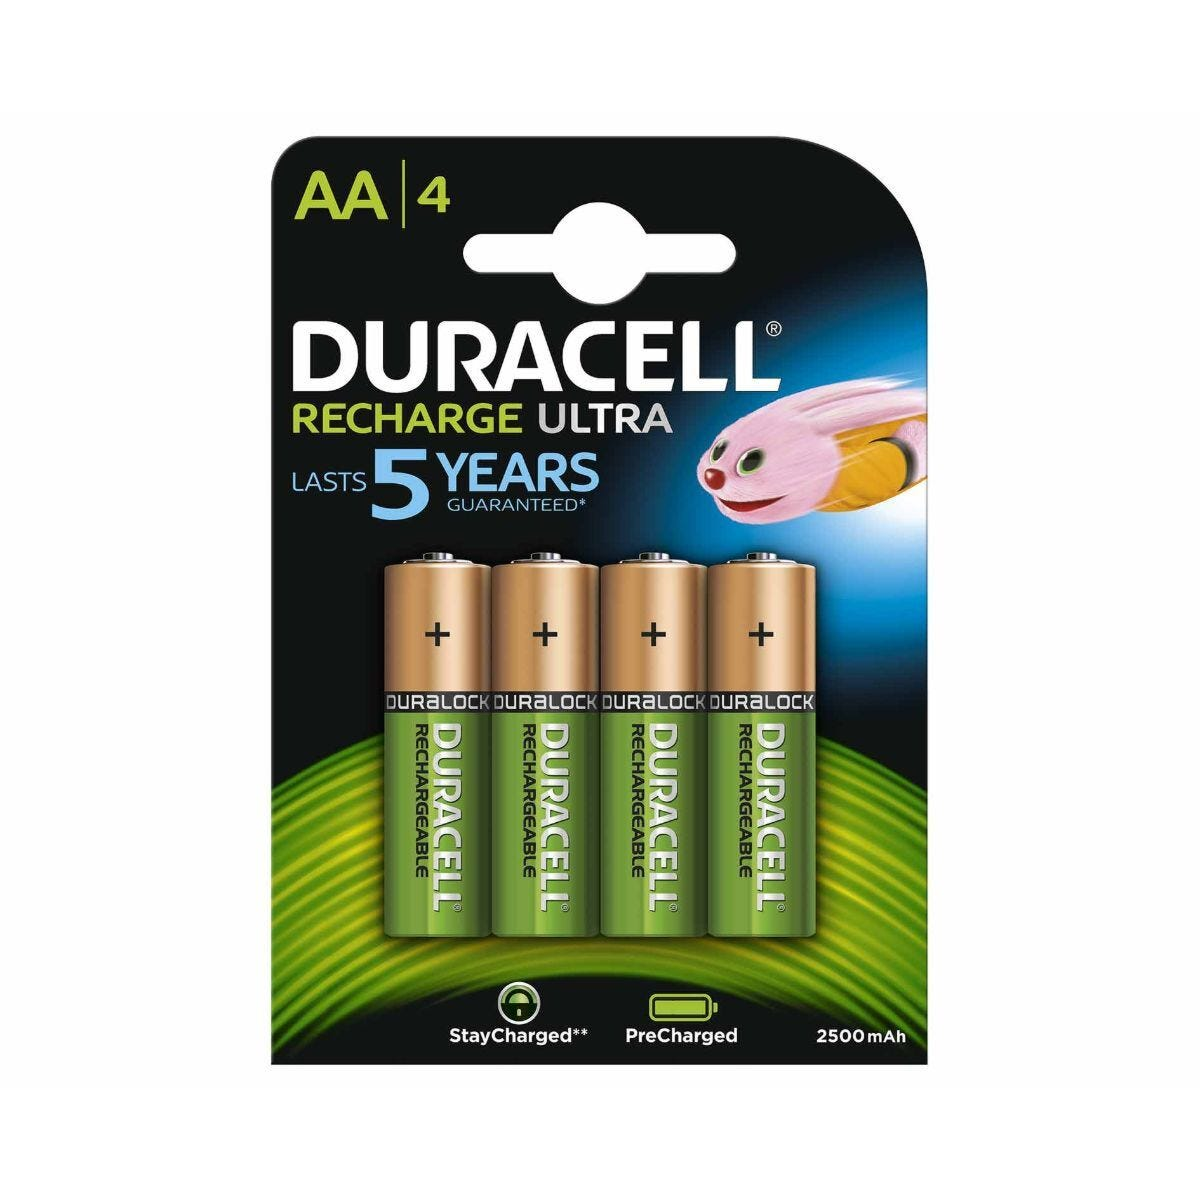 Duracell Recharge Ultra AA Batteries Pack of 4